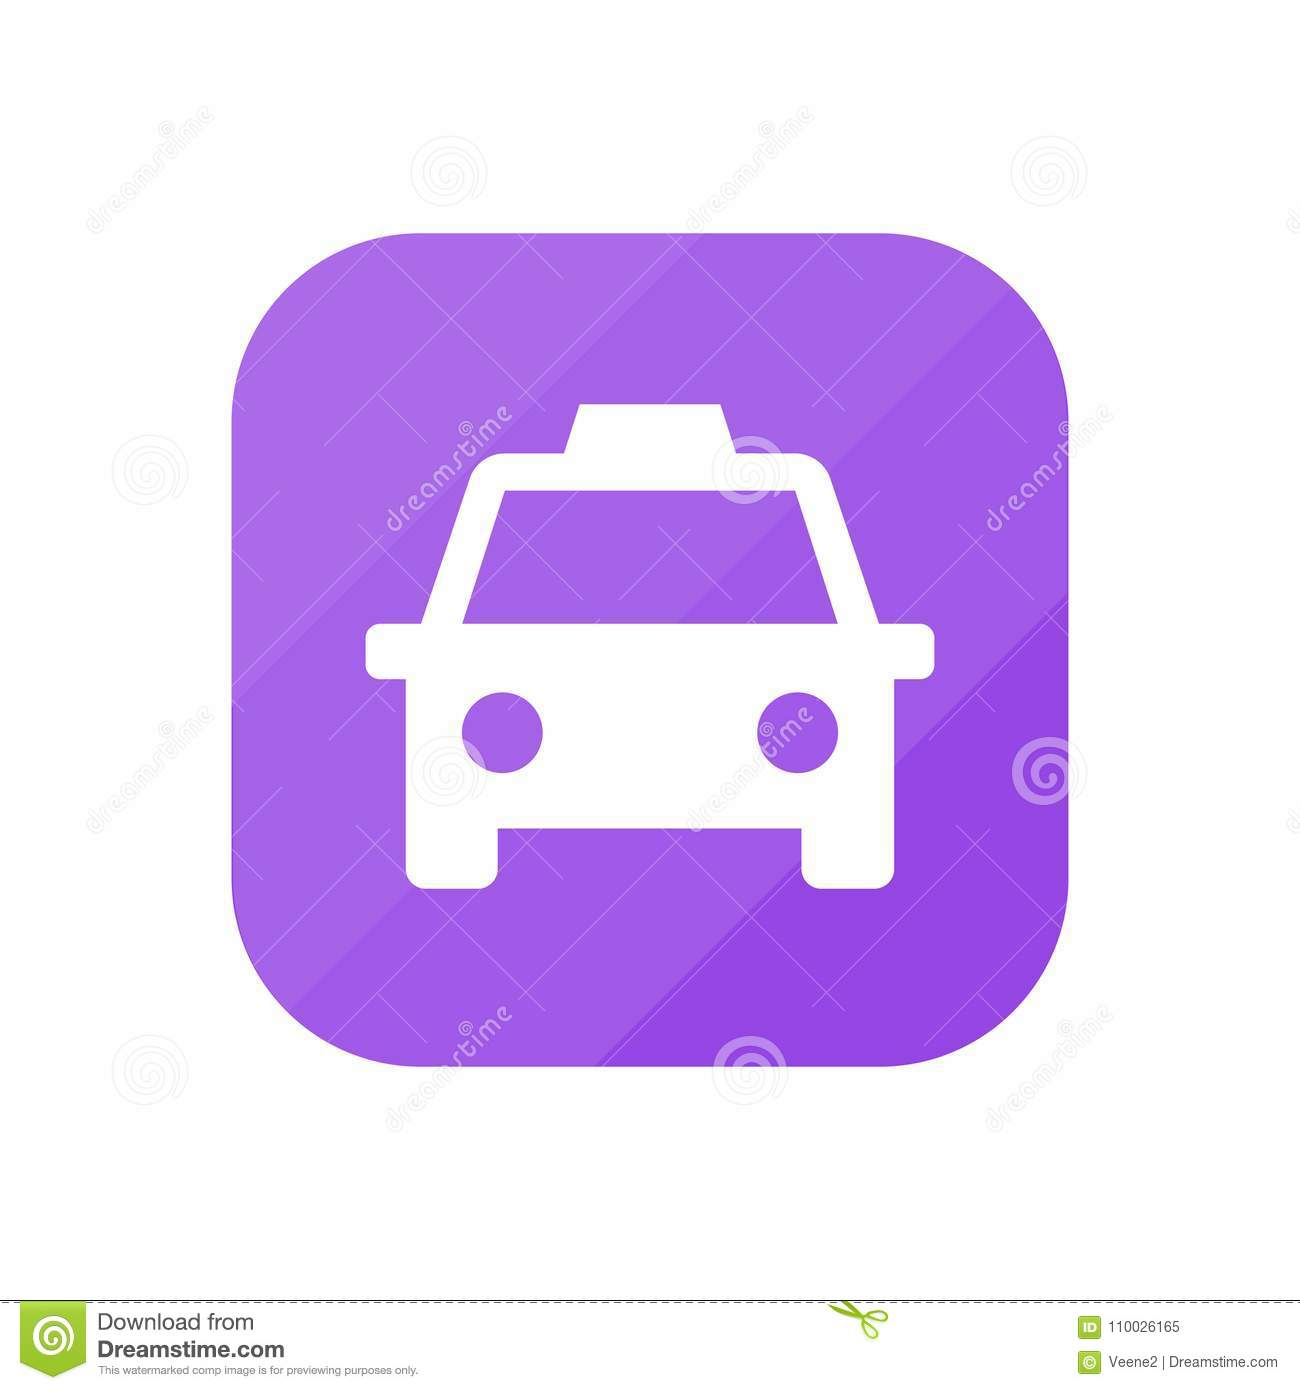 Taxi - App Pictogram